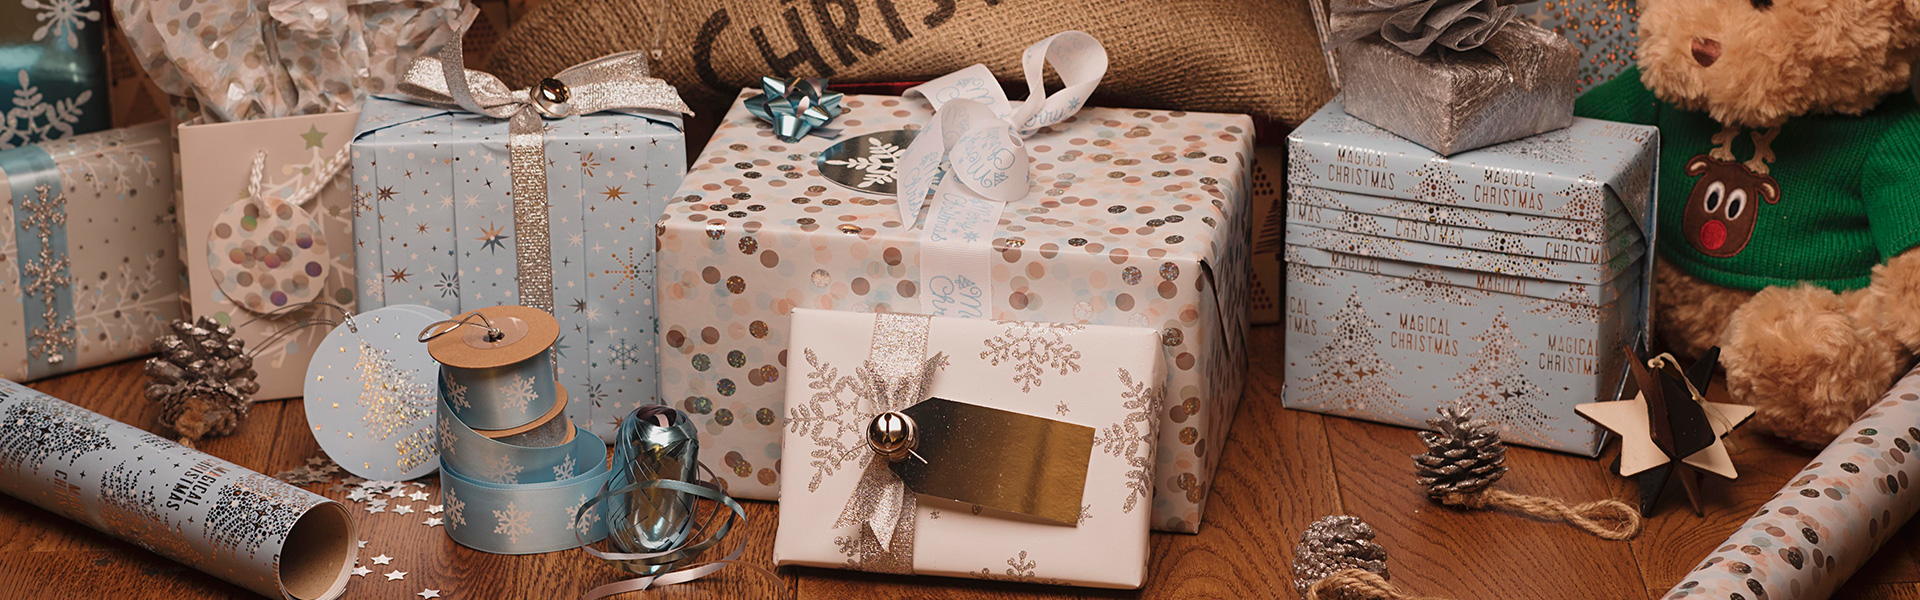 Magical Frozen Christmas Gift Wrap WHSmith Blog